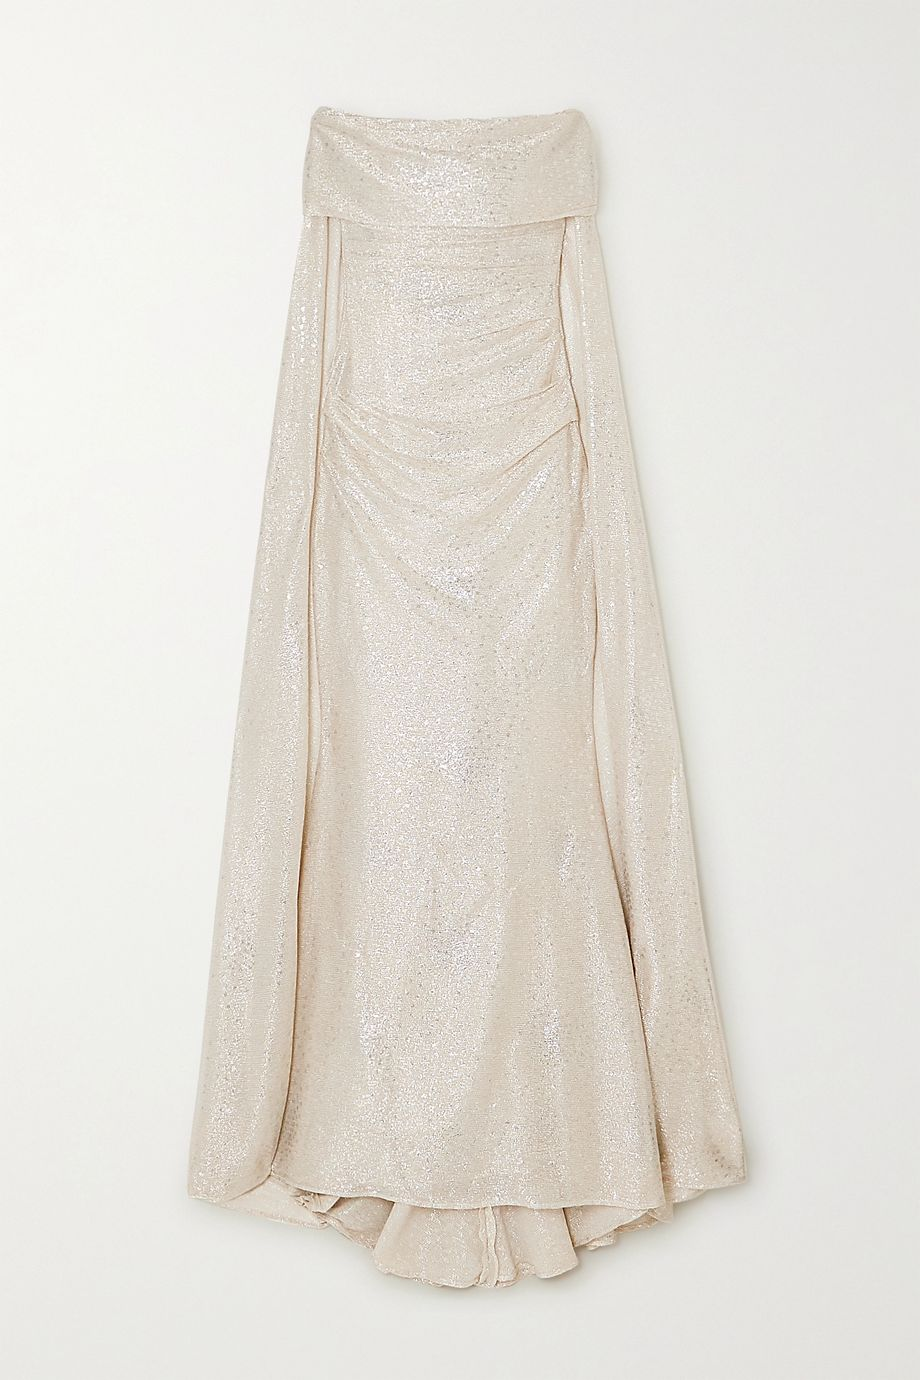 Talbot Runhof Bortolo cape-effect ruched metallic voile gown